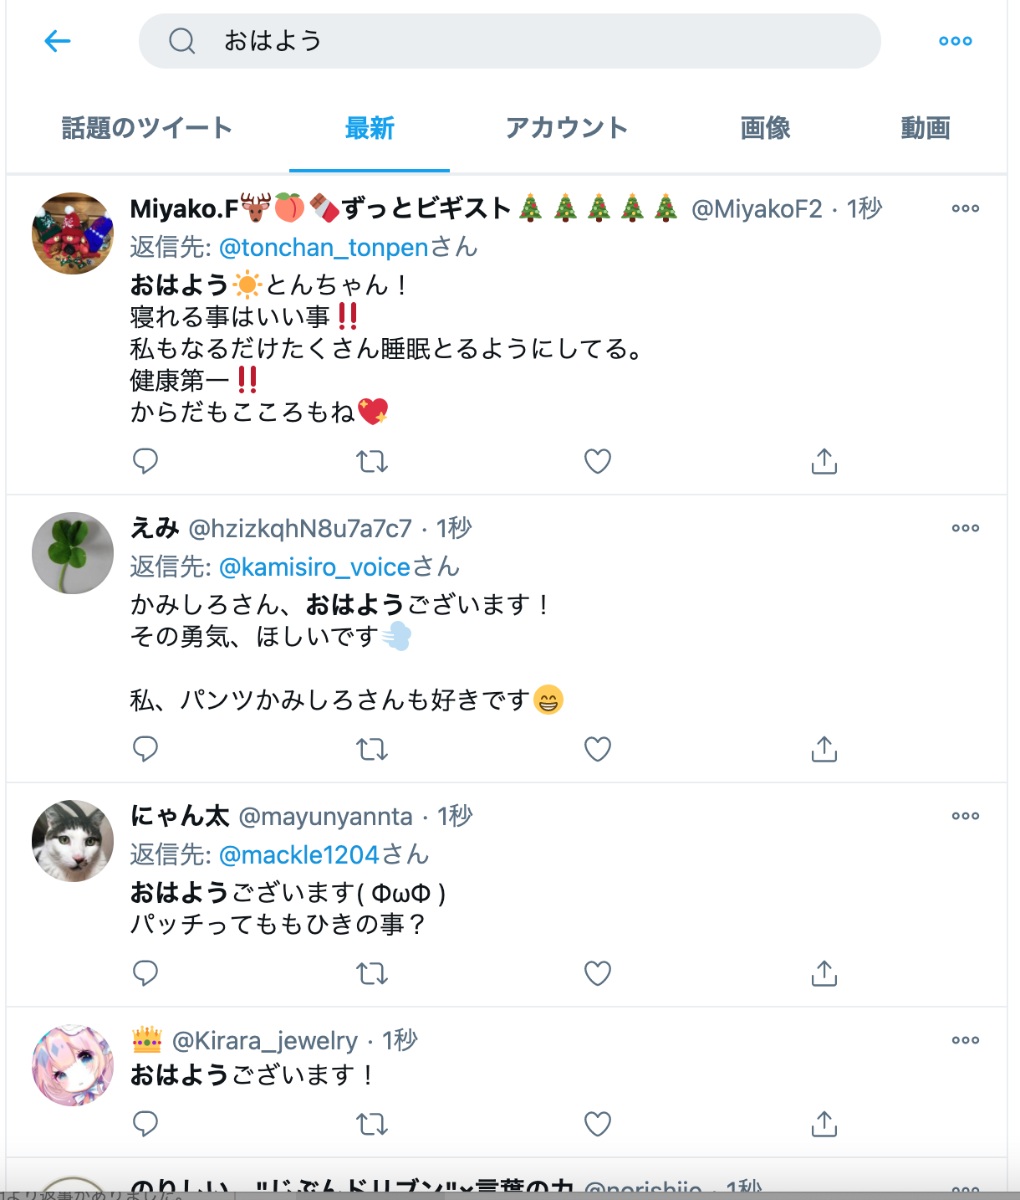 https://twitter.com/search?q=おはよう&src=typed_query&f=live_202012180945時点